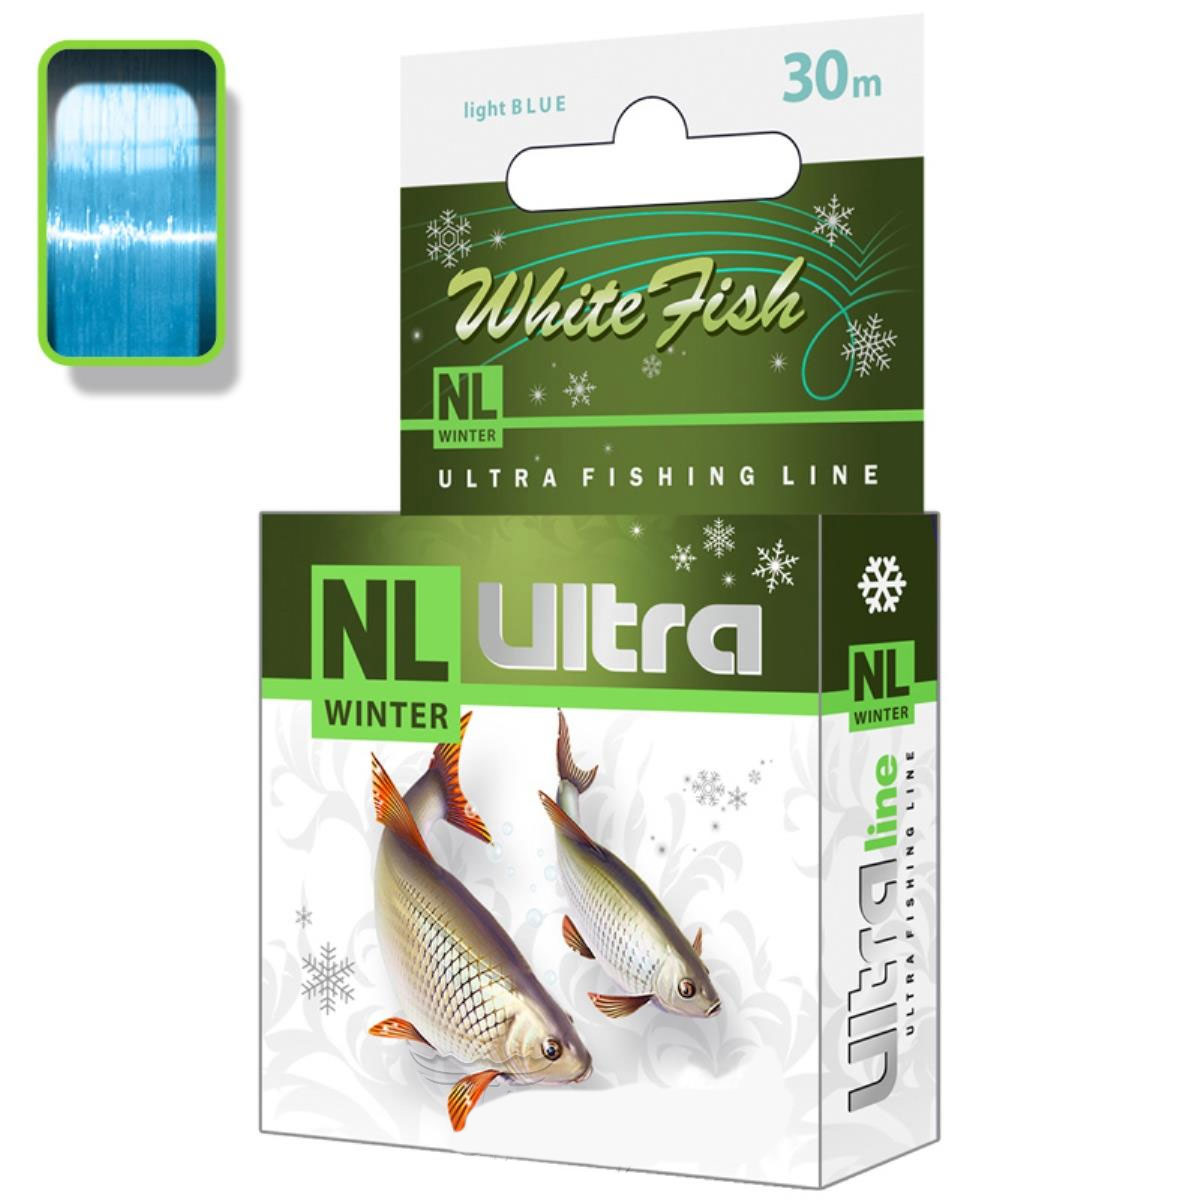 леска зимняя nl ultra white fish (белая рыба) 30m 0,16mm